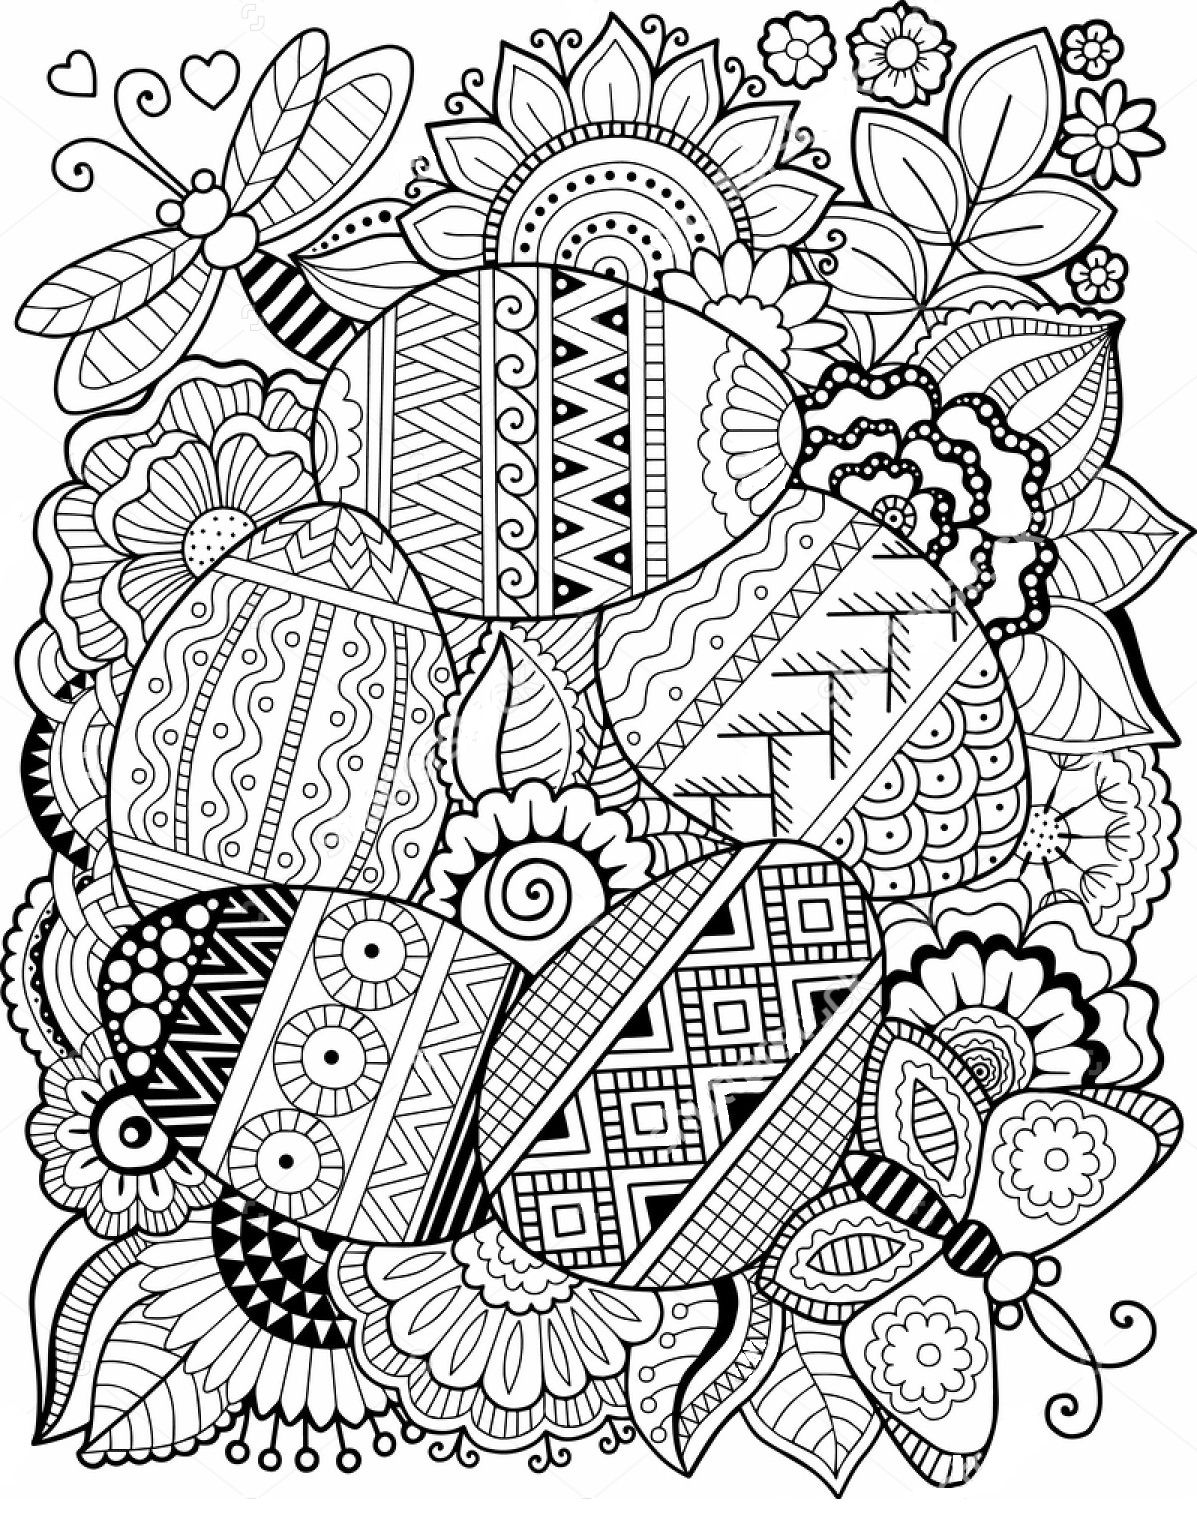 Easter Egg Zentangle Coloring Page With Images Easter Coloring Pages Easter Egg Coloring Pages Spring Coloring Pages